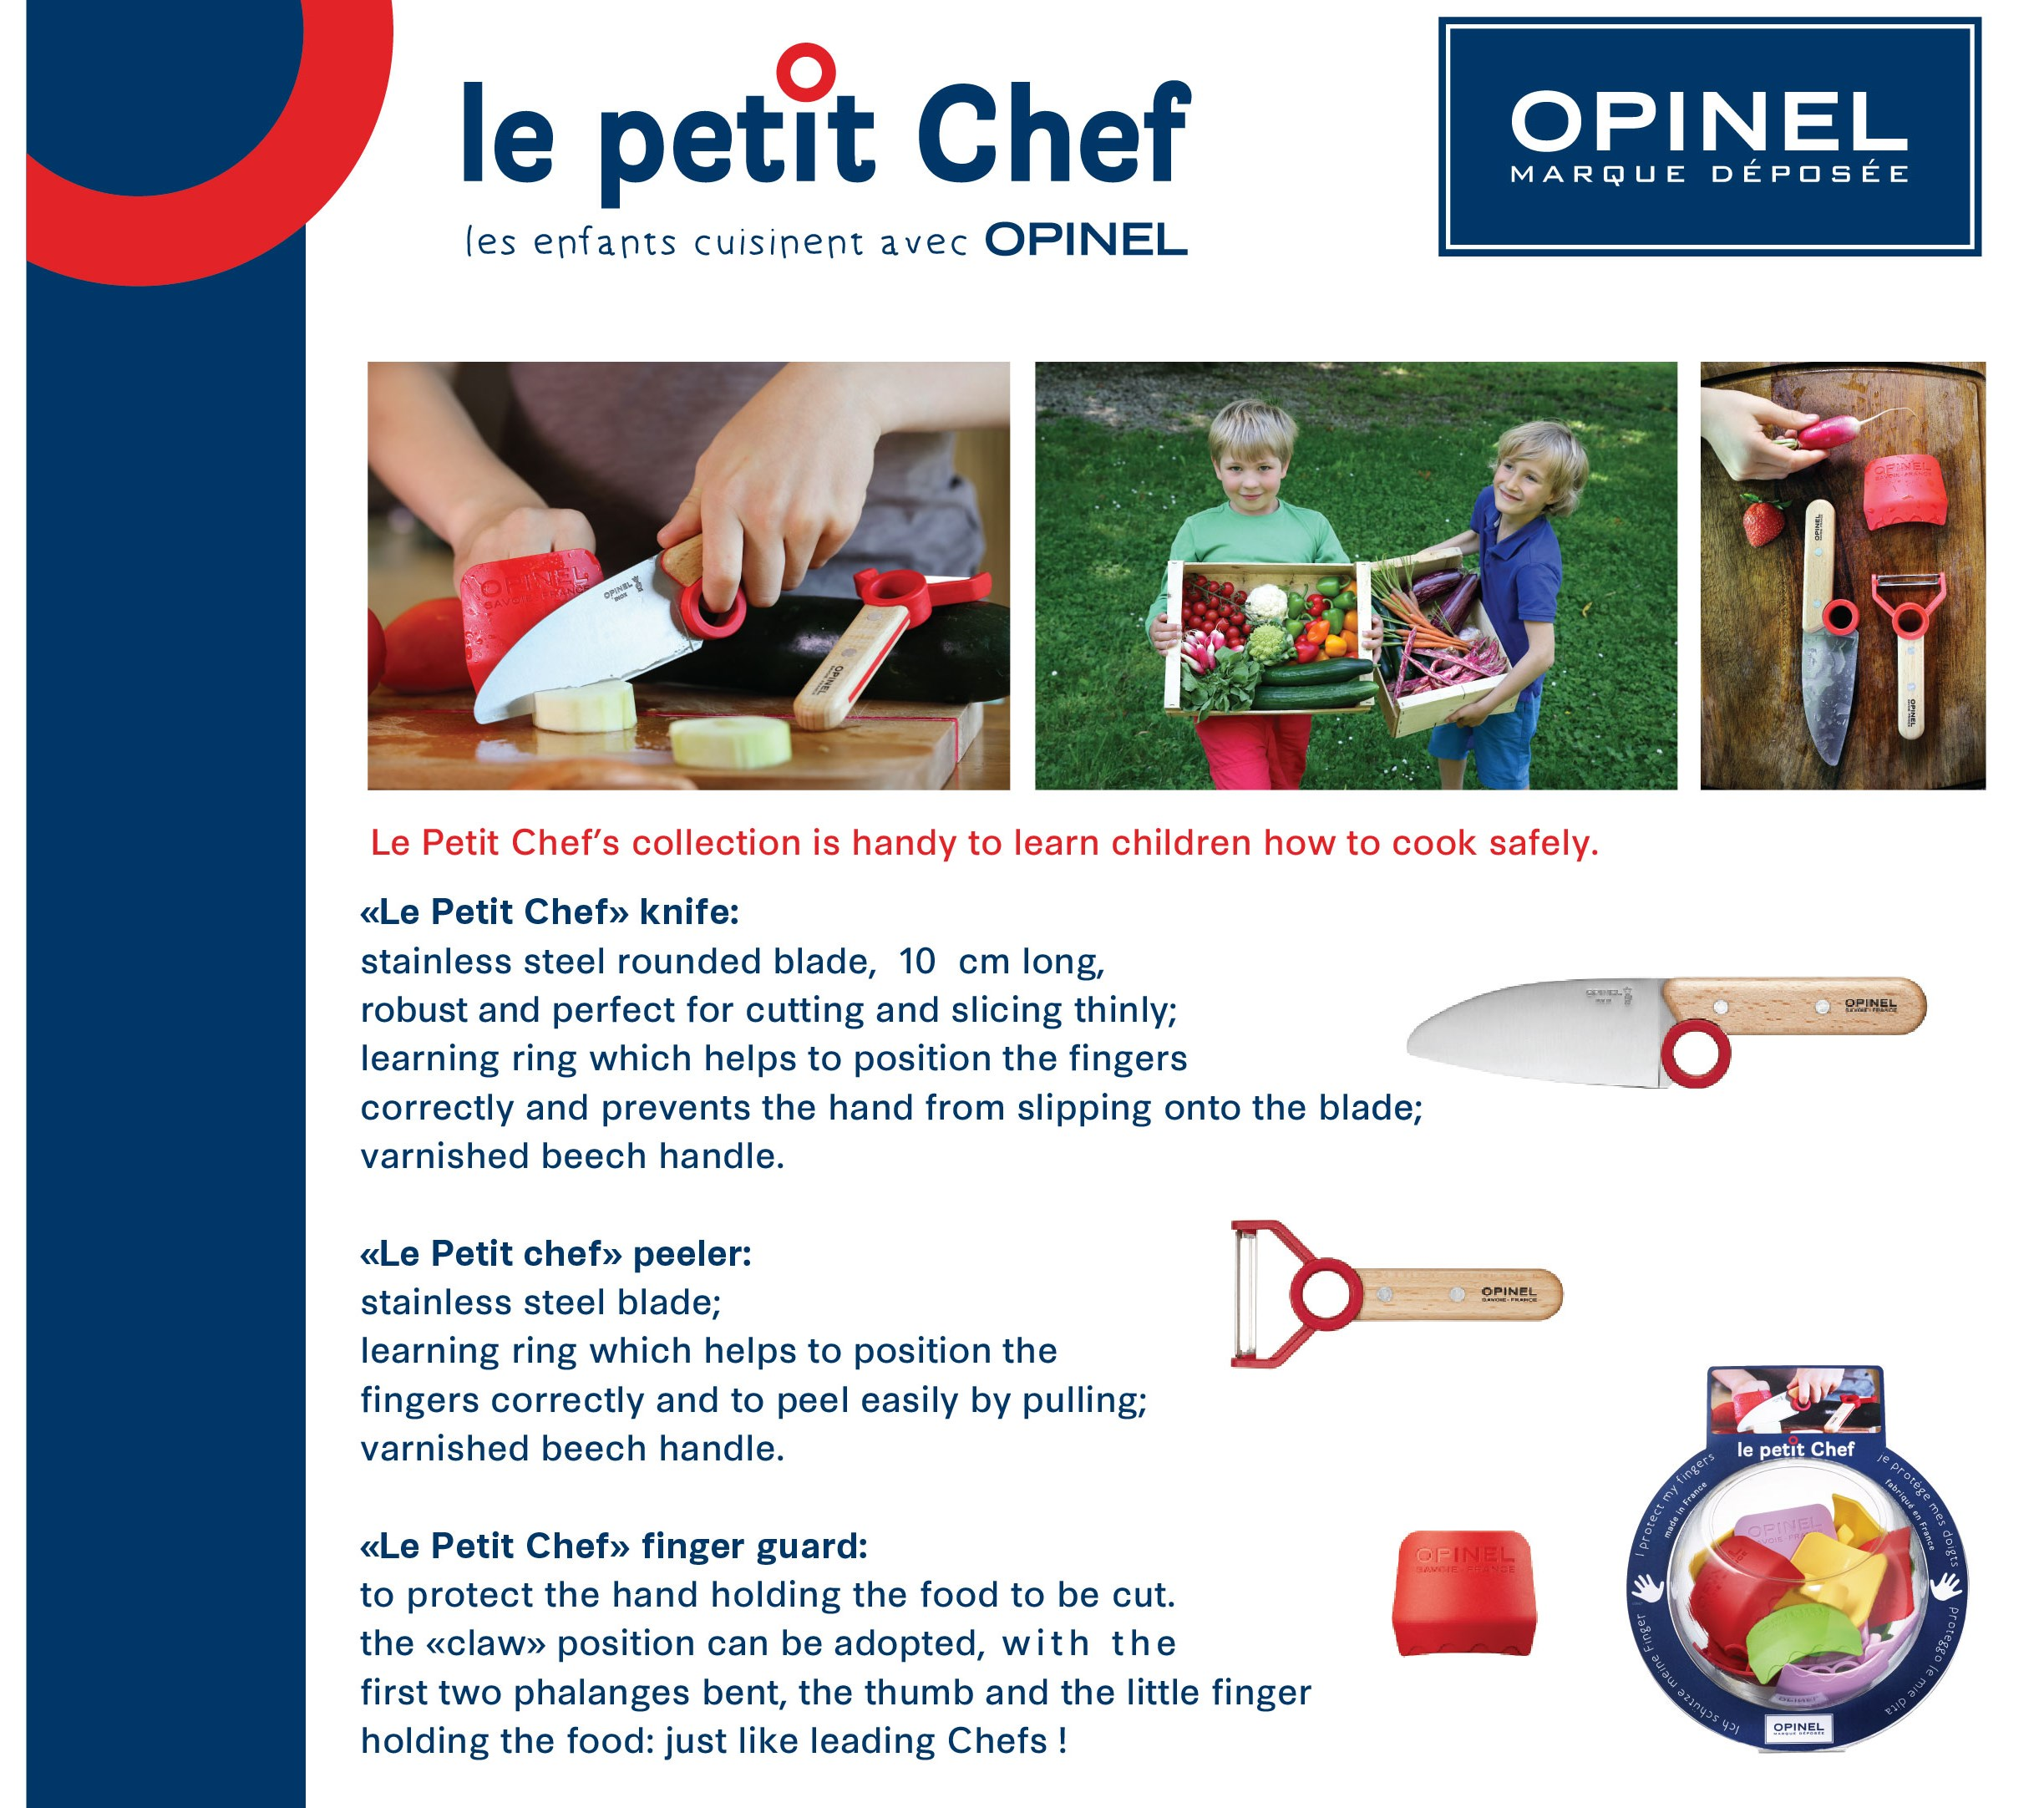 Le Petit Chef Opinel